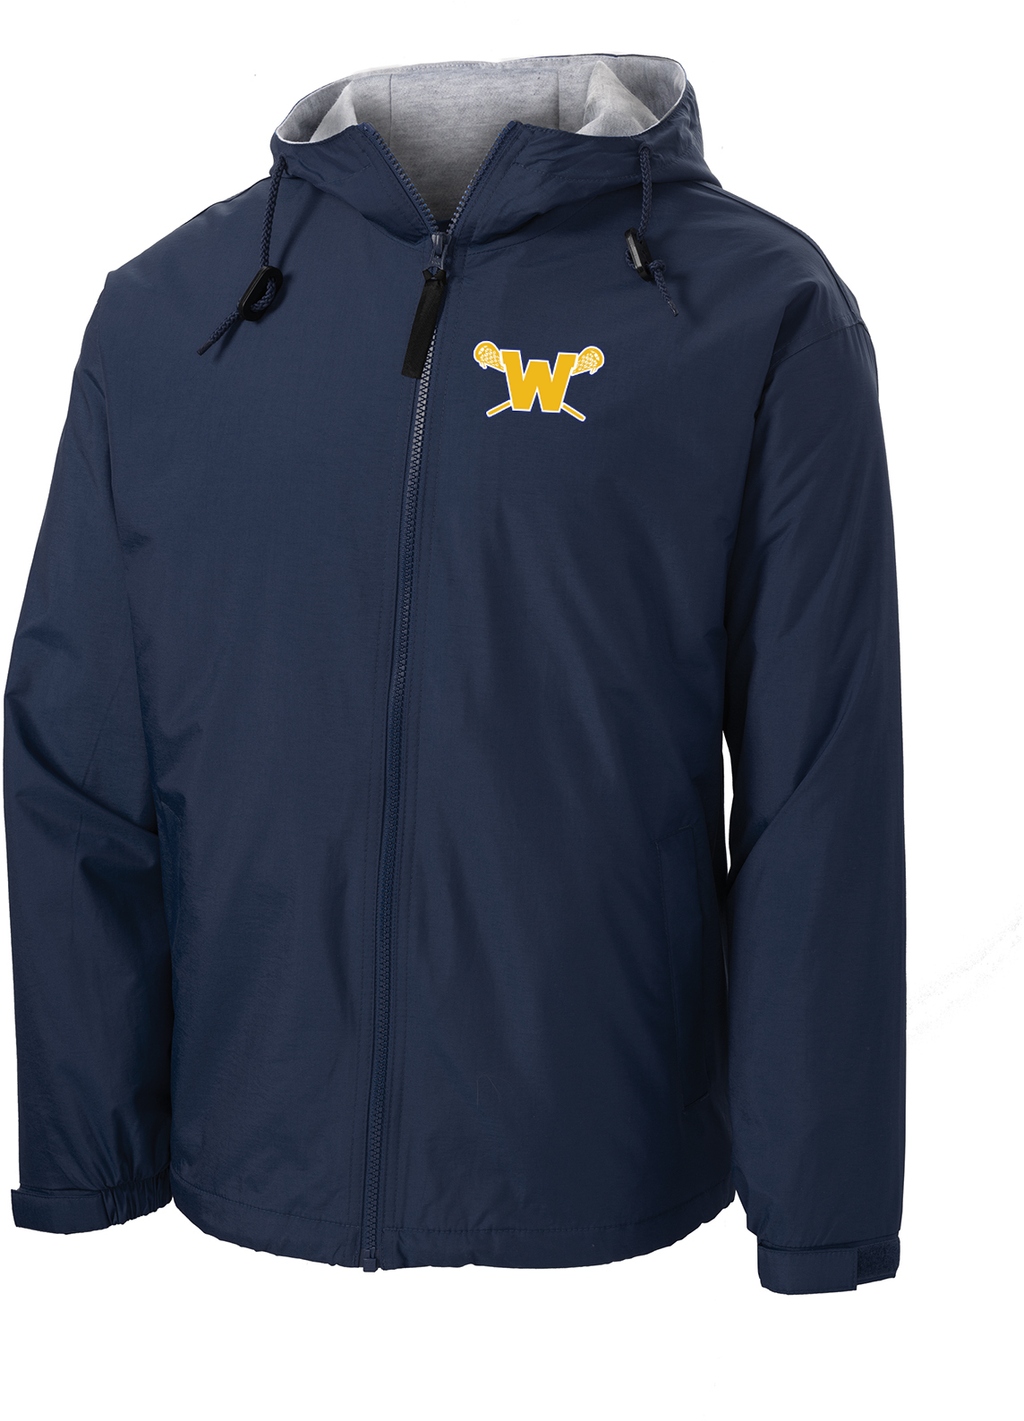 Webster Lacrosse Navy Hooded Jacket